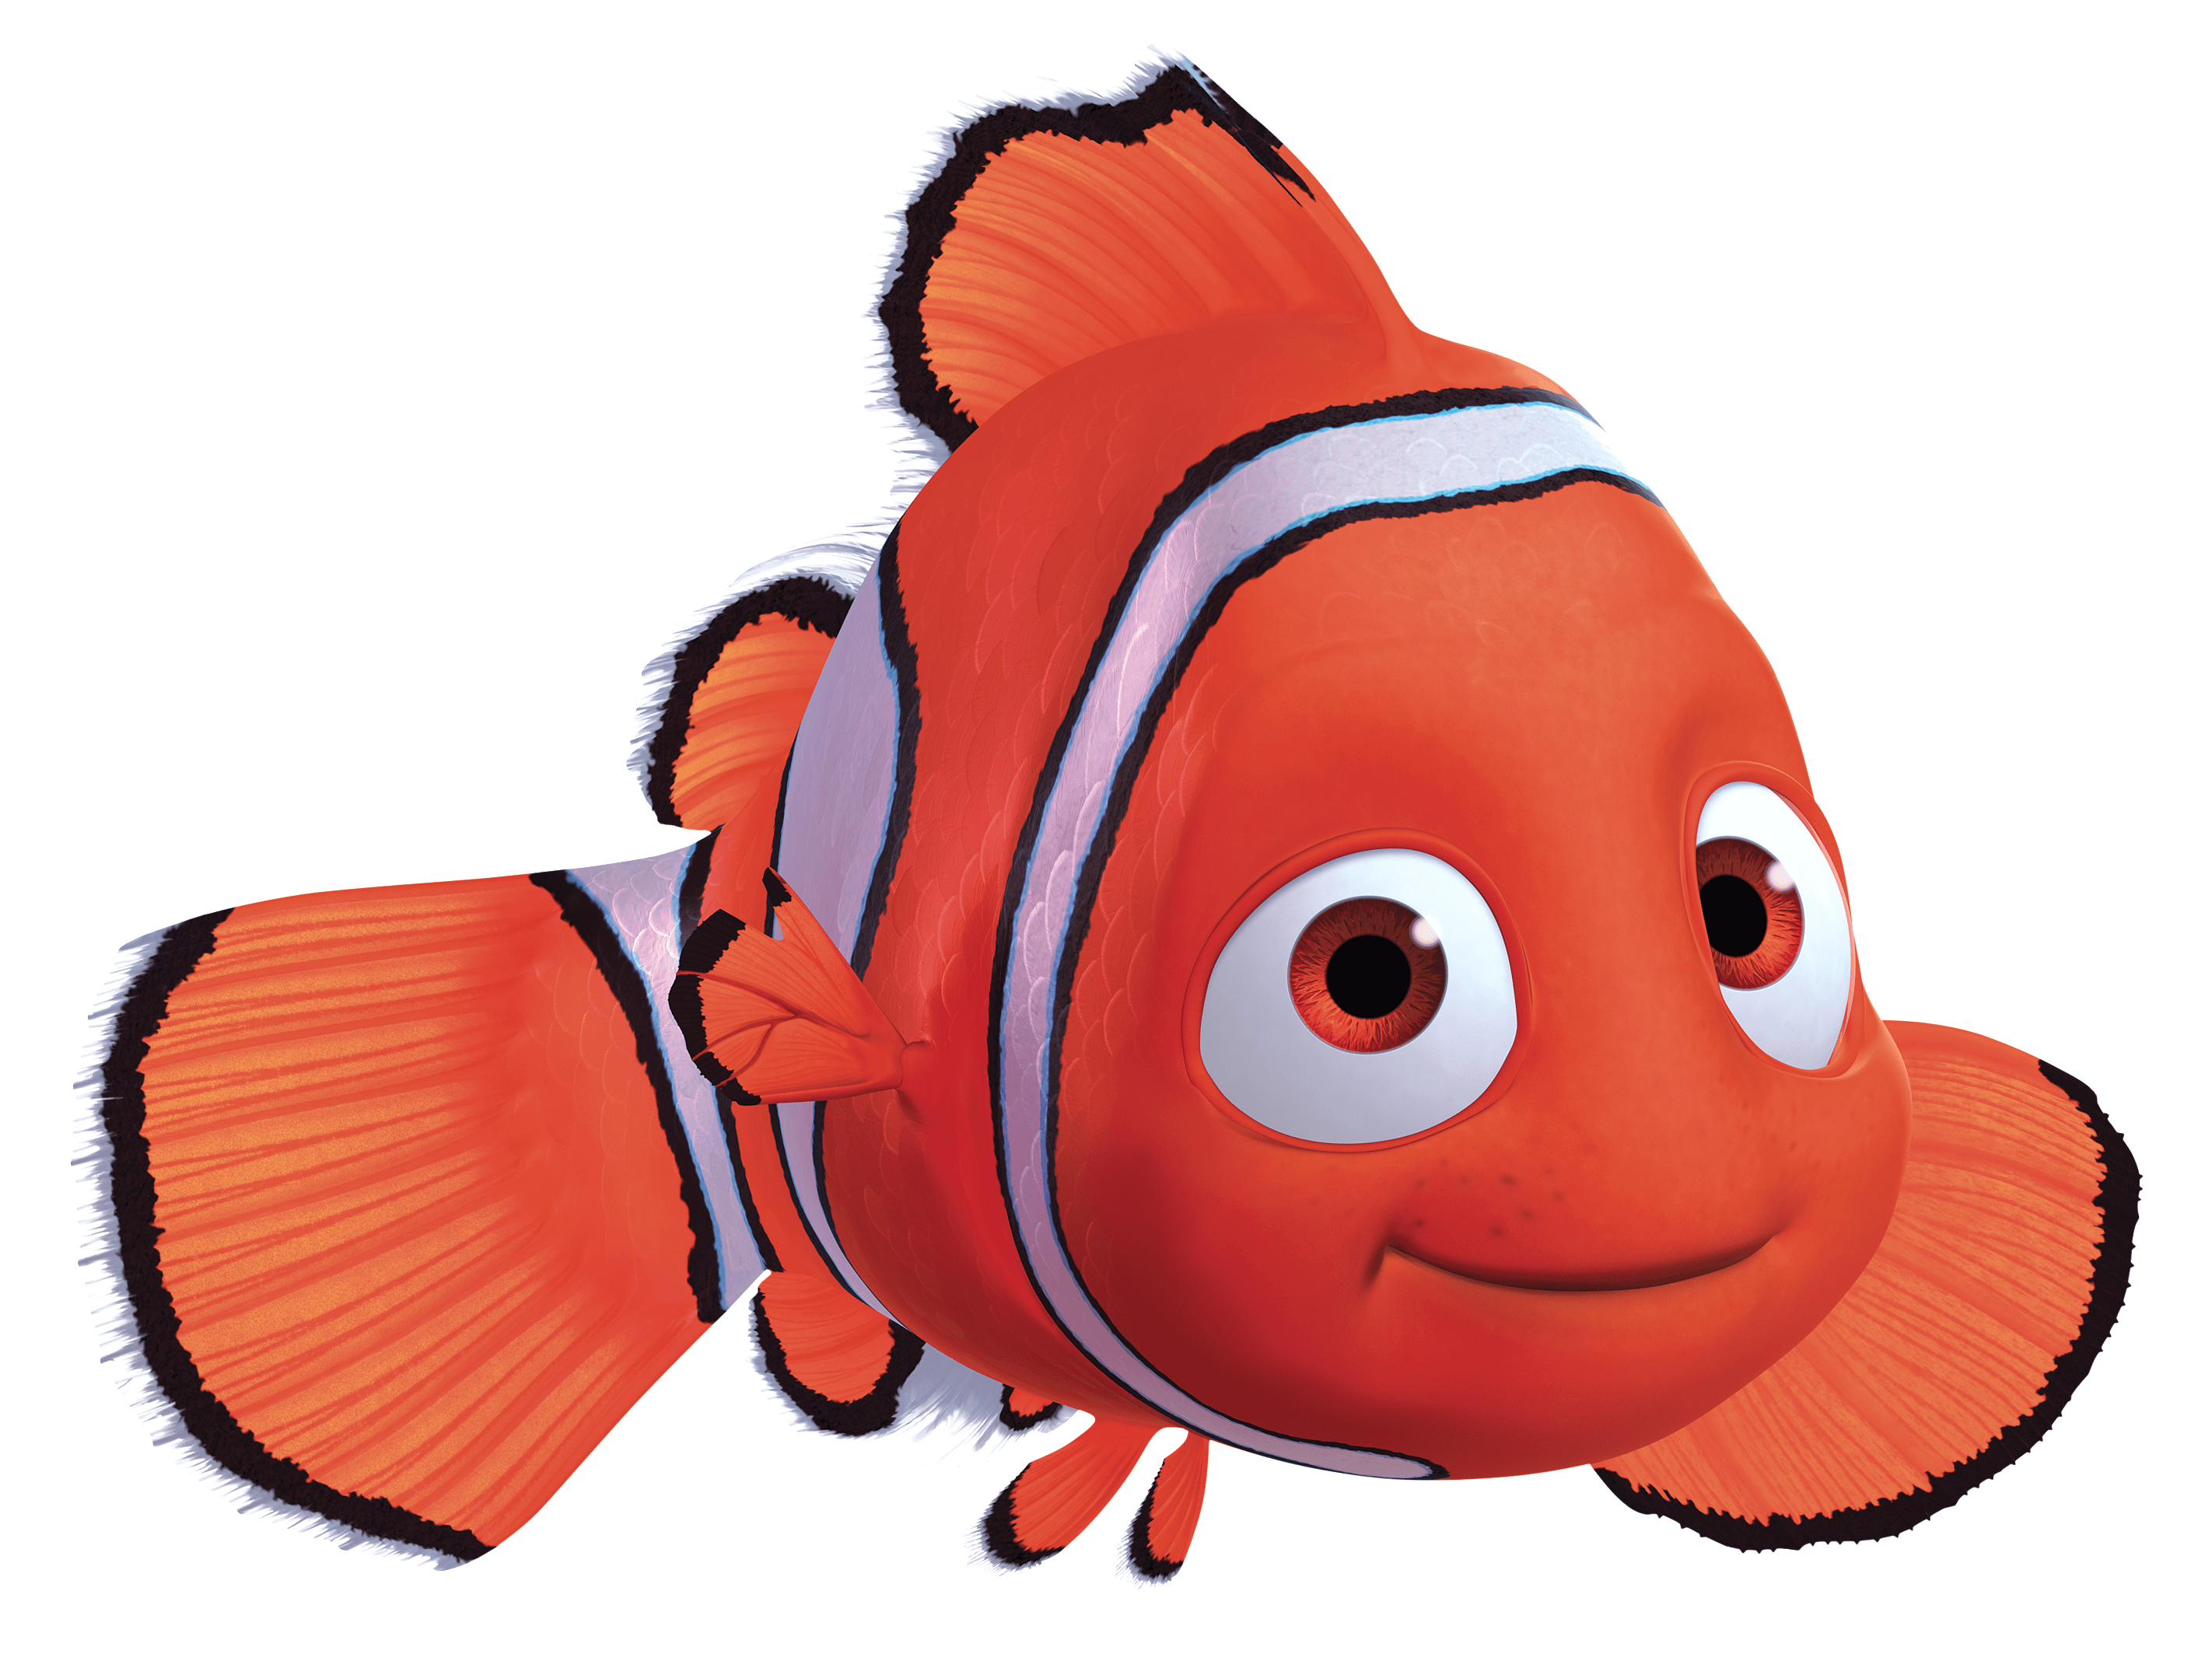 Finding nemo silhouette at. Dory clipart character pixar